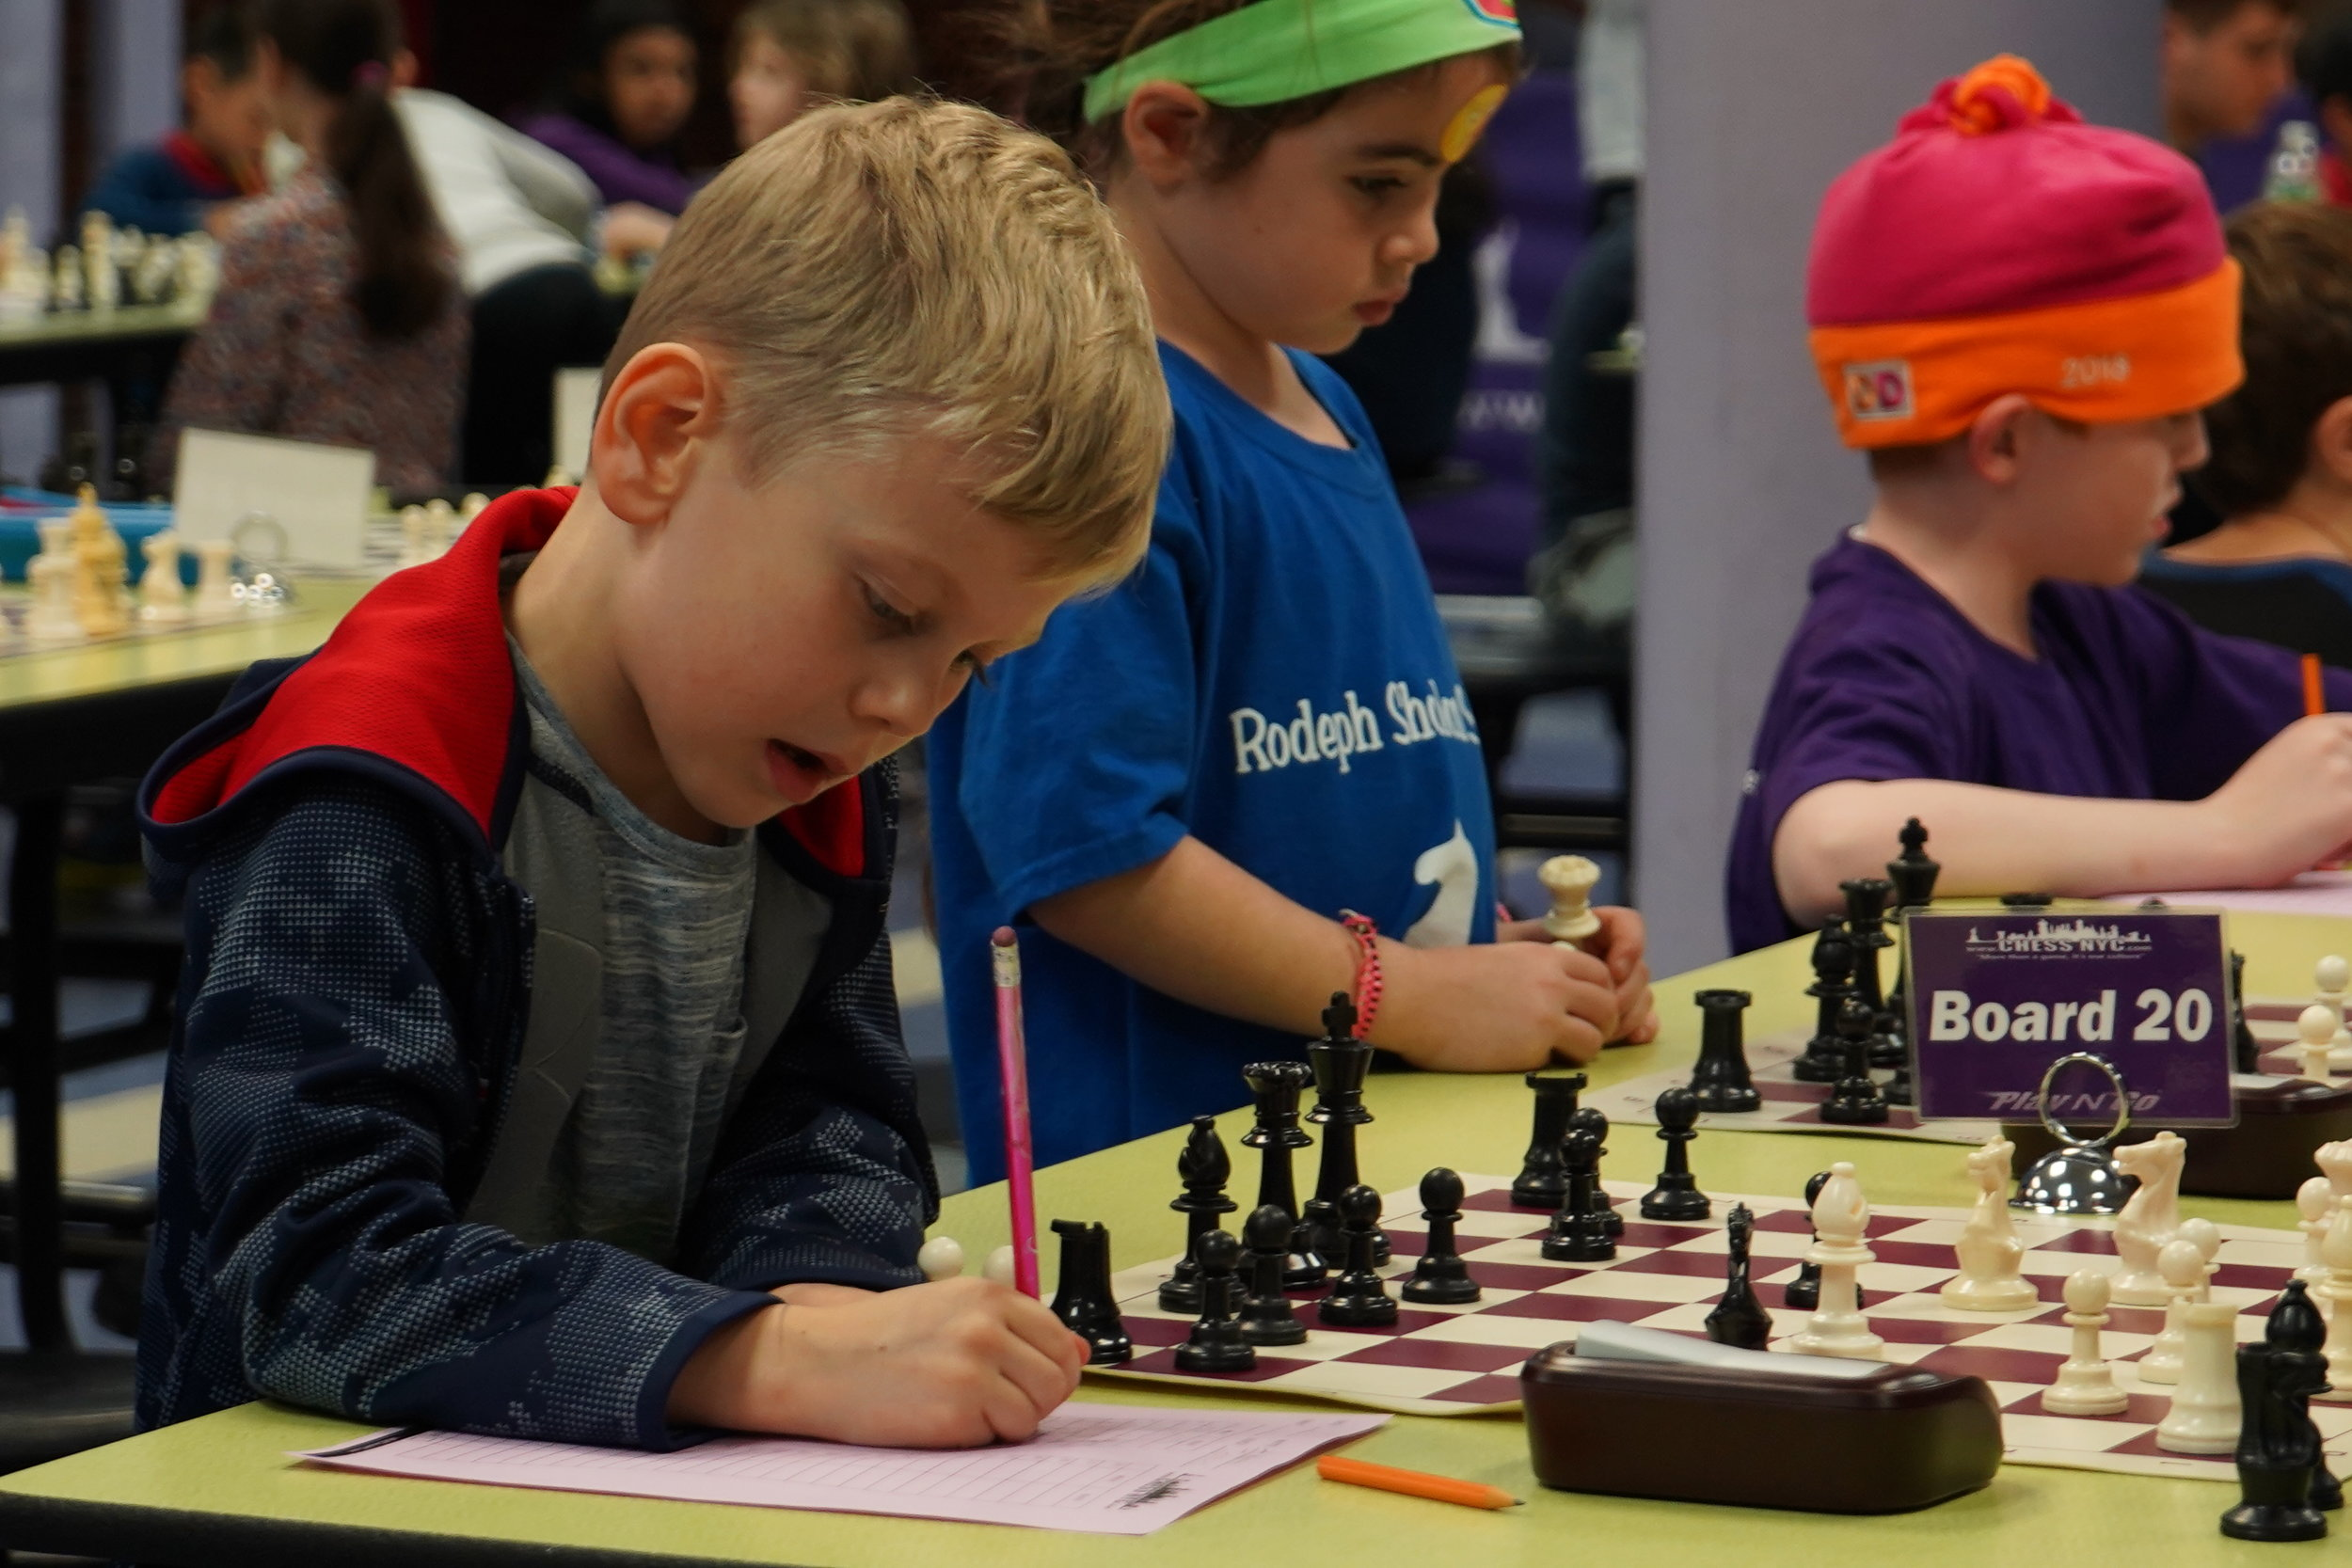 Chess is more than just a game. It enhances skills and brain development.